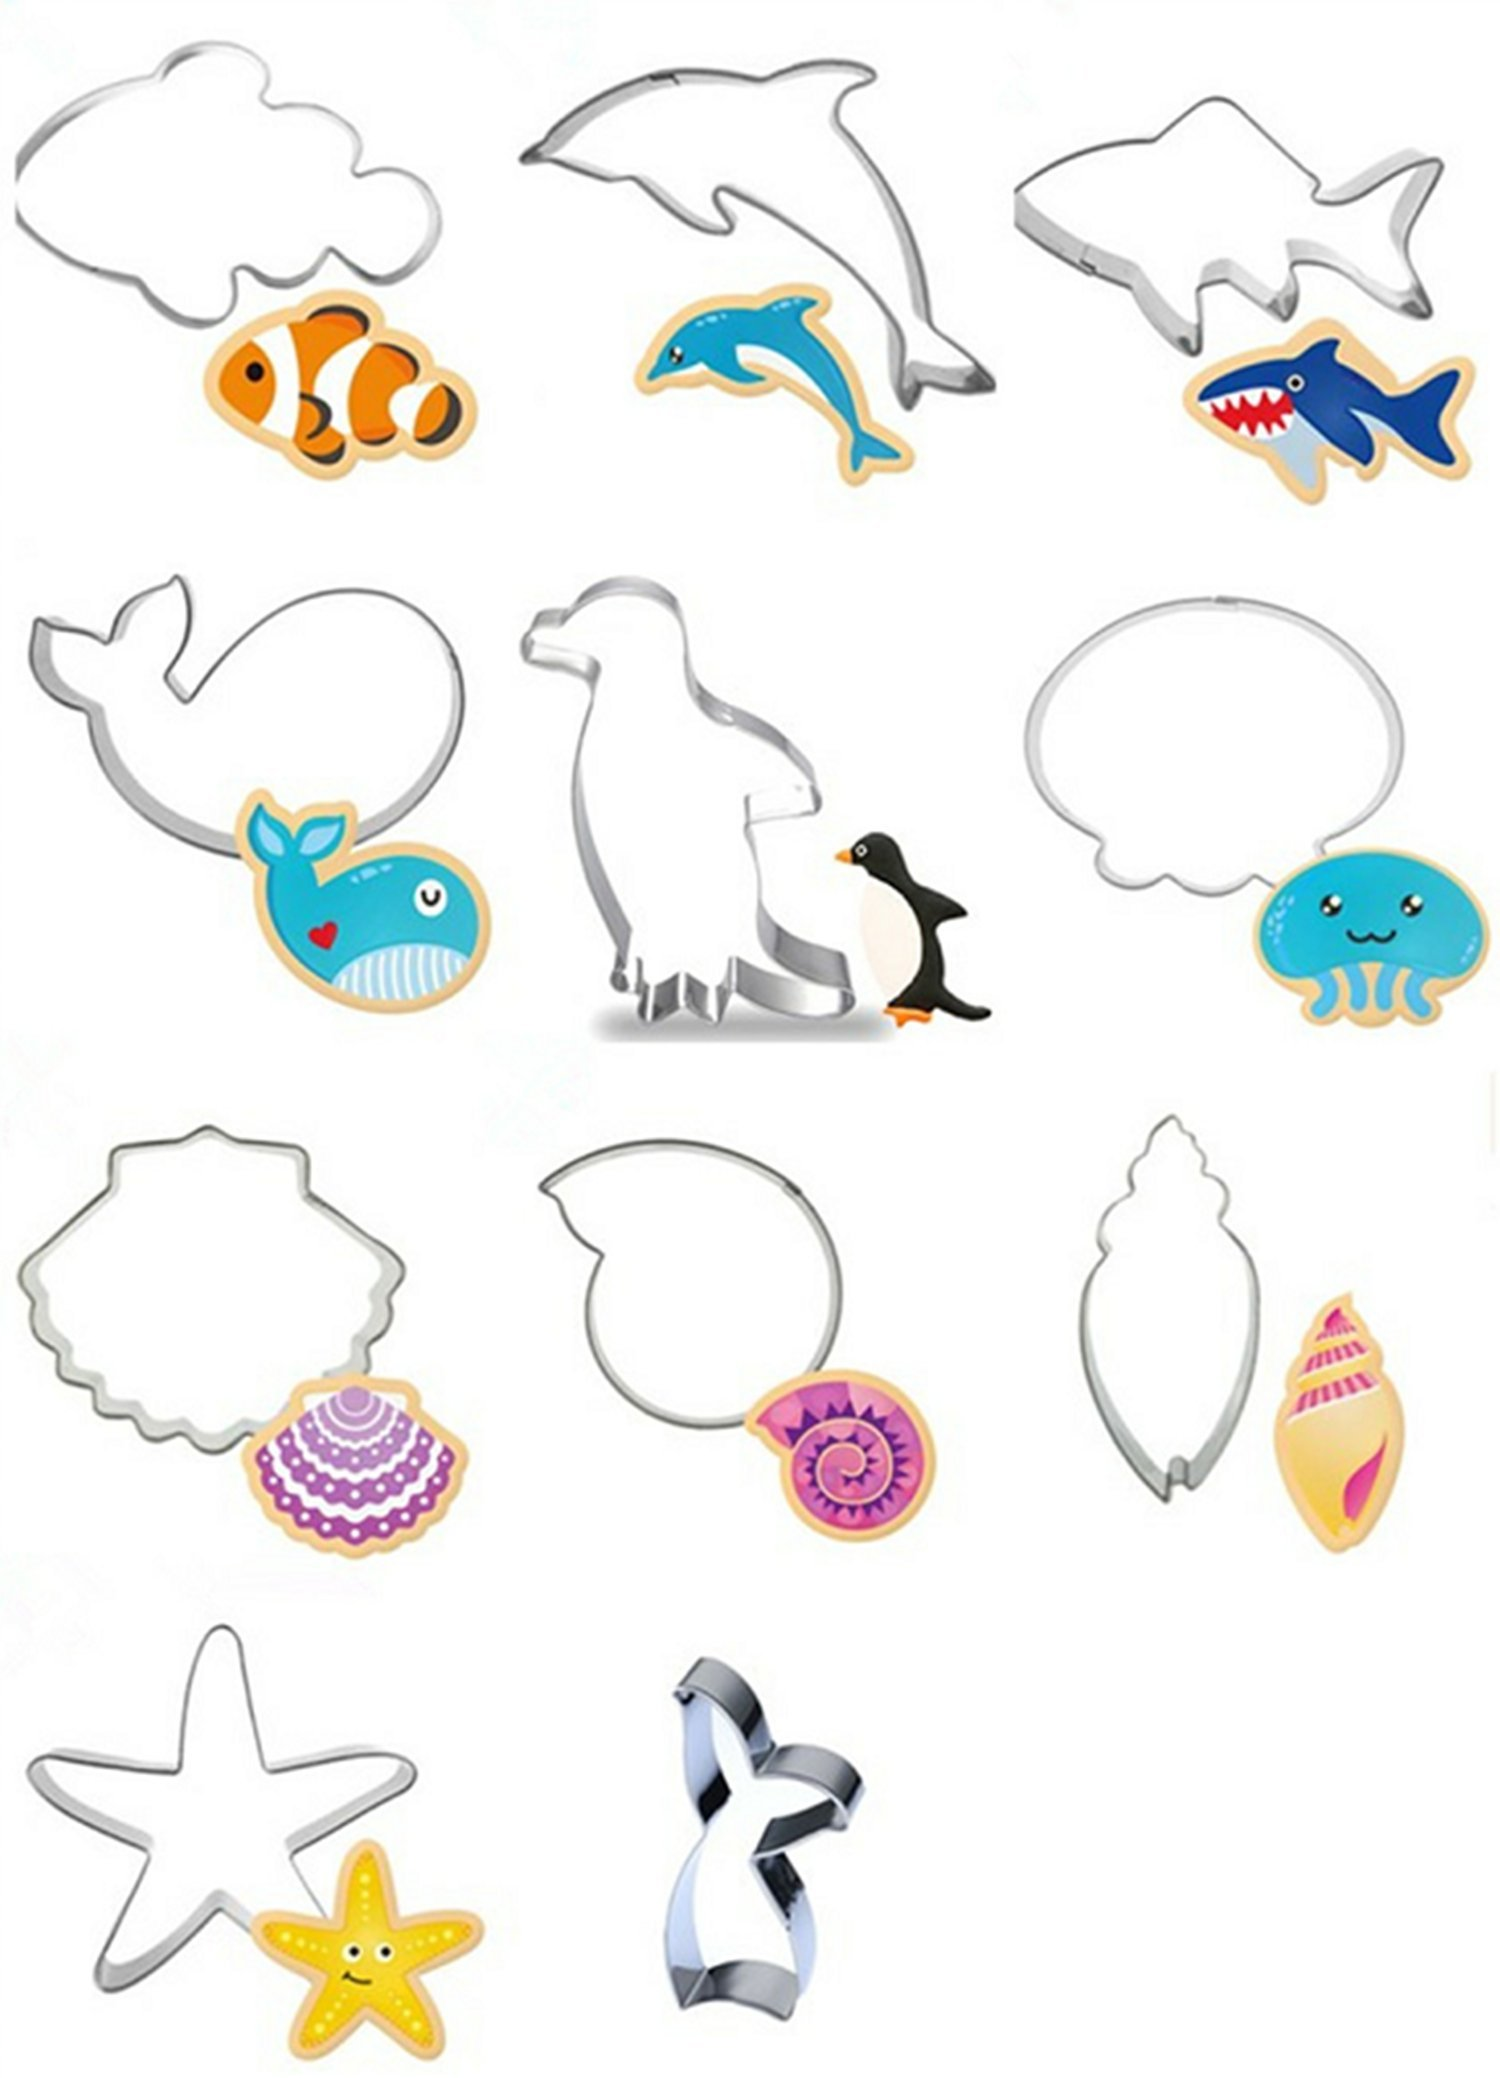 Efivs Arts 11 Pcs Fish Dolphin Penguin Starfish Conch Octopus Shark Meraid Tail Marine Animal Stainless Steel Cookie Cutter Fondant Cutter Set Cup Cake Decorating Tools